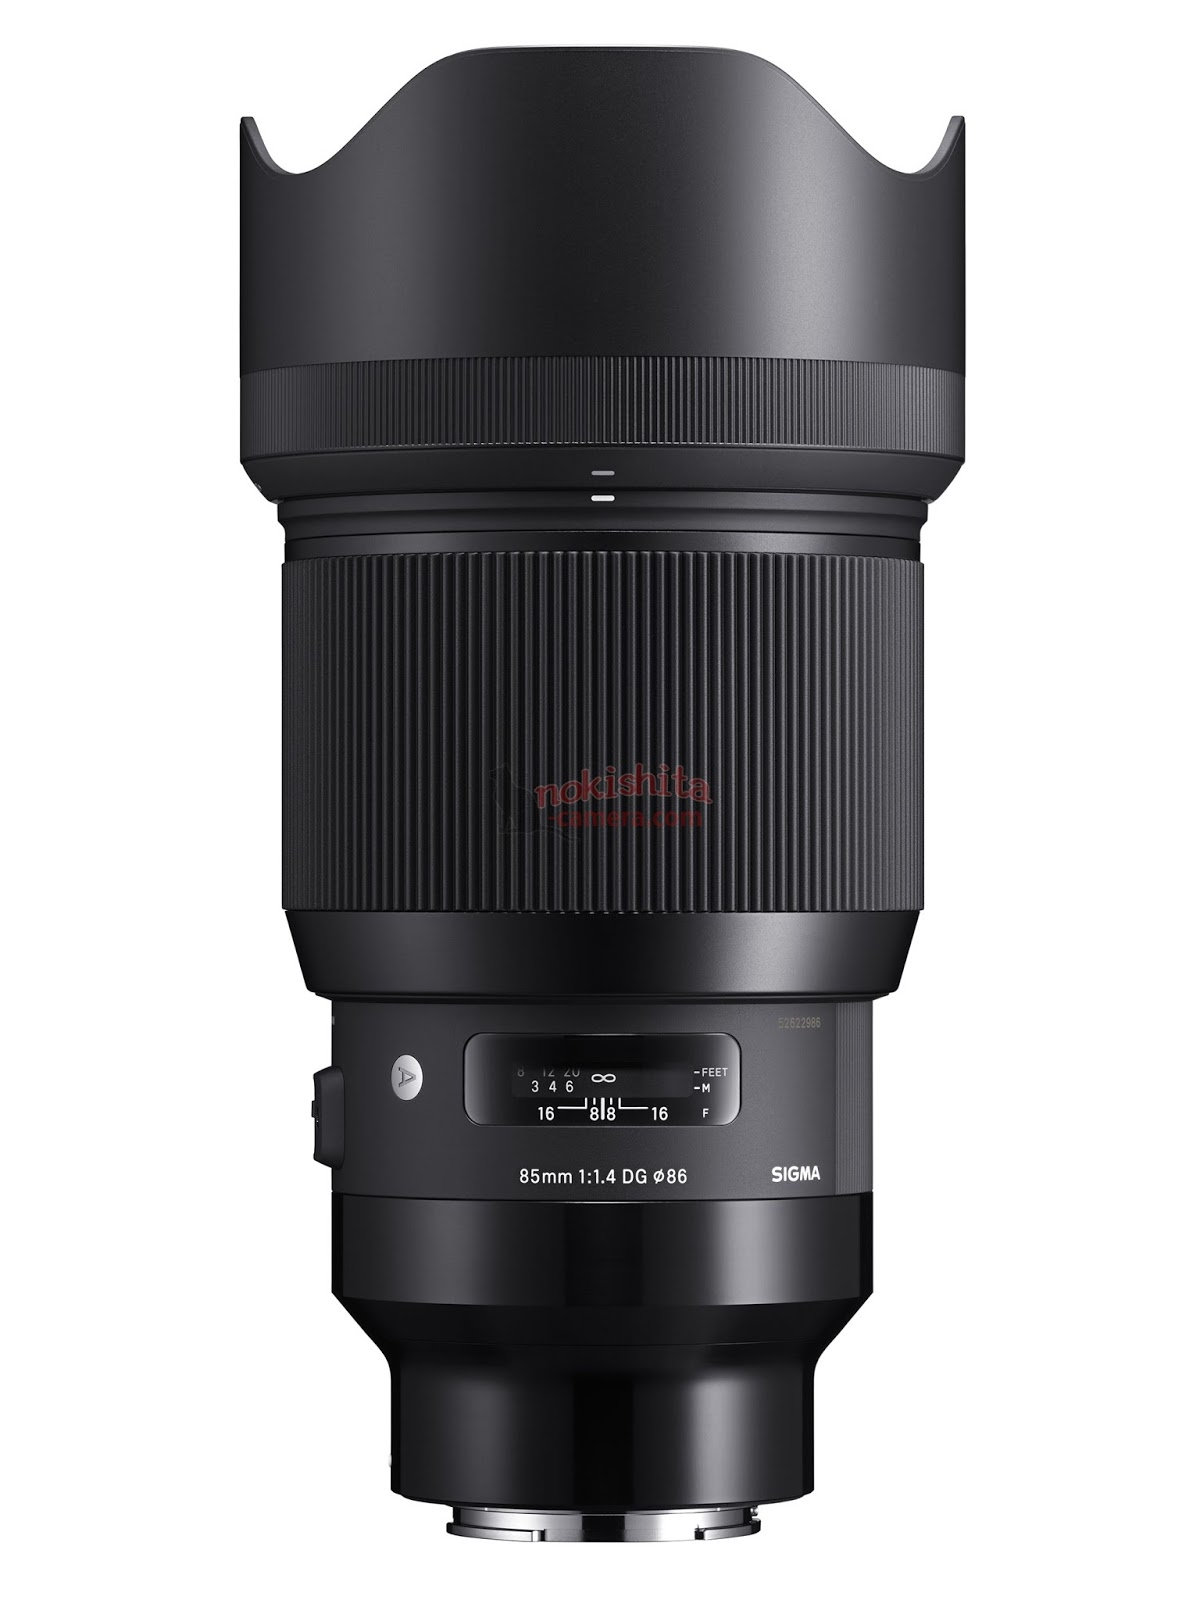 9 New Sigma Art Lenses For Sony E Mount To Be Announced